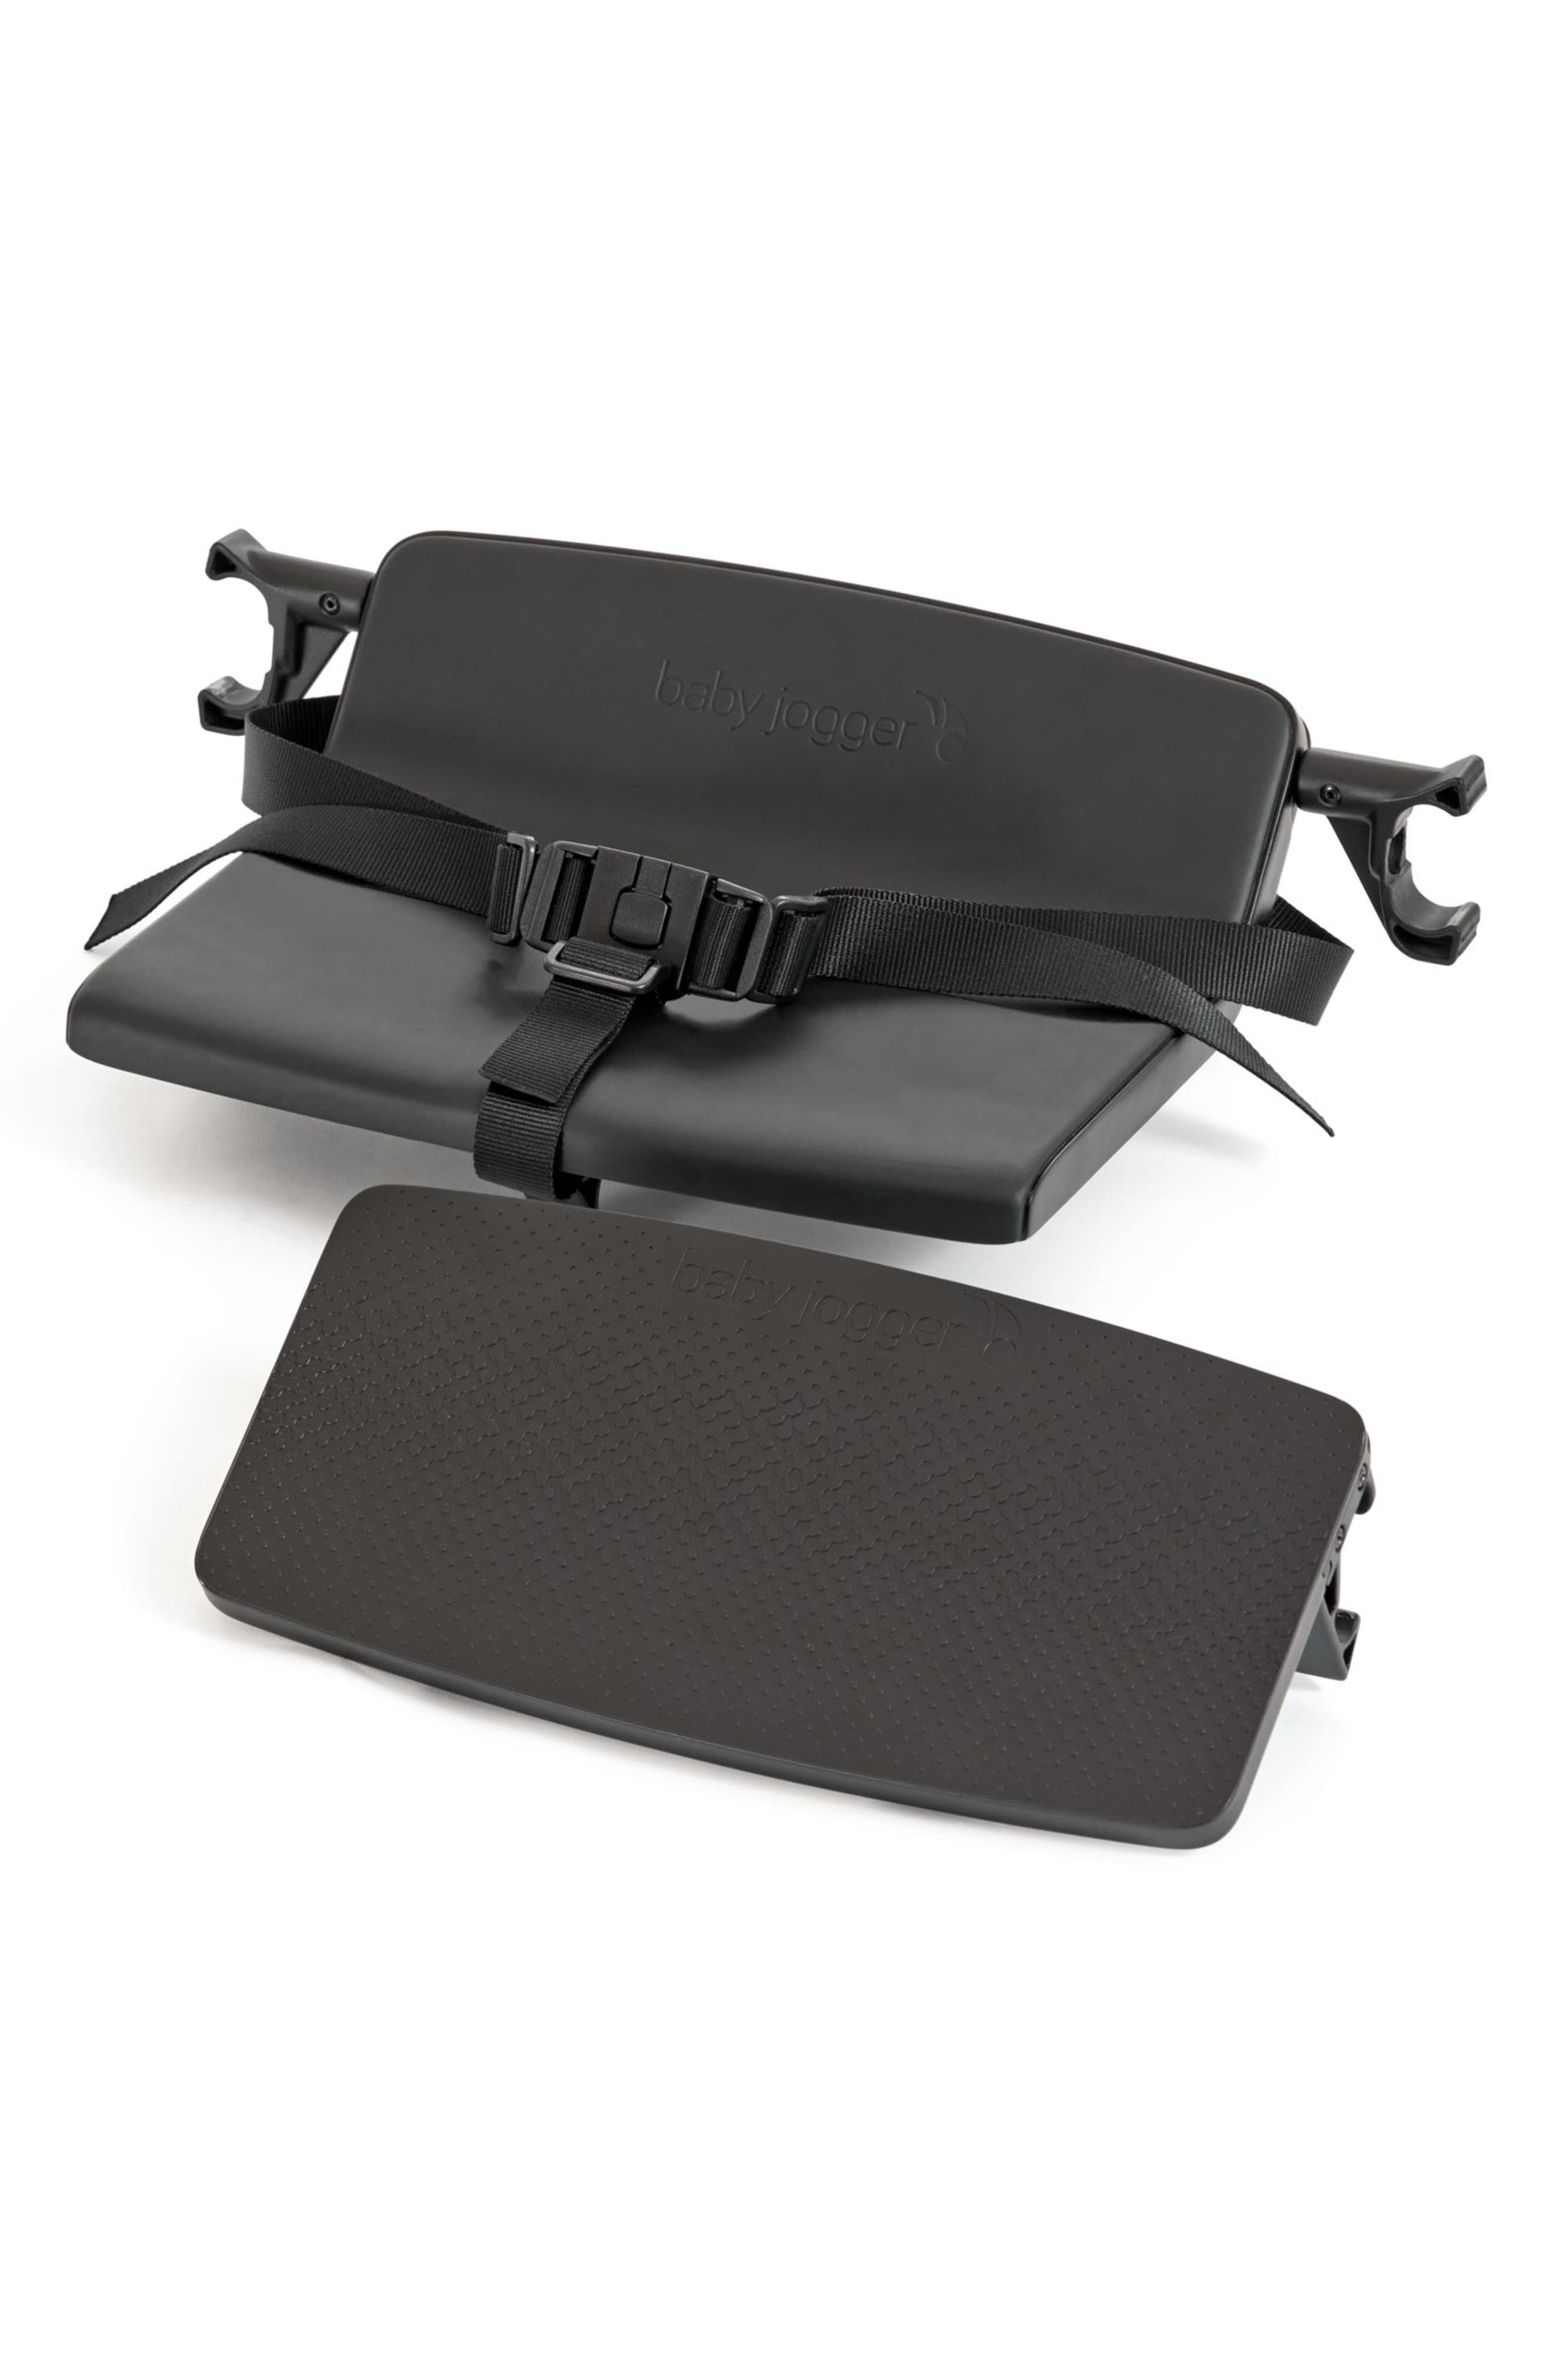 Alternate Image 1 Selected - Baby Jogger Lux Bench Seat for City Select™ Stroller